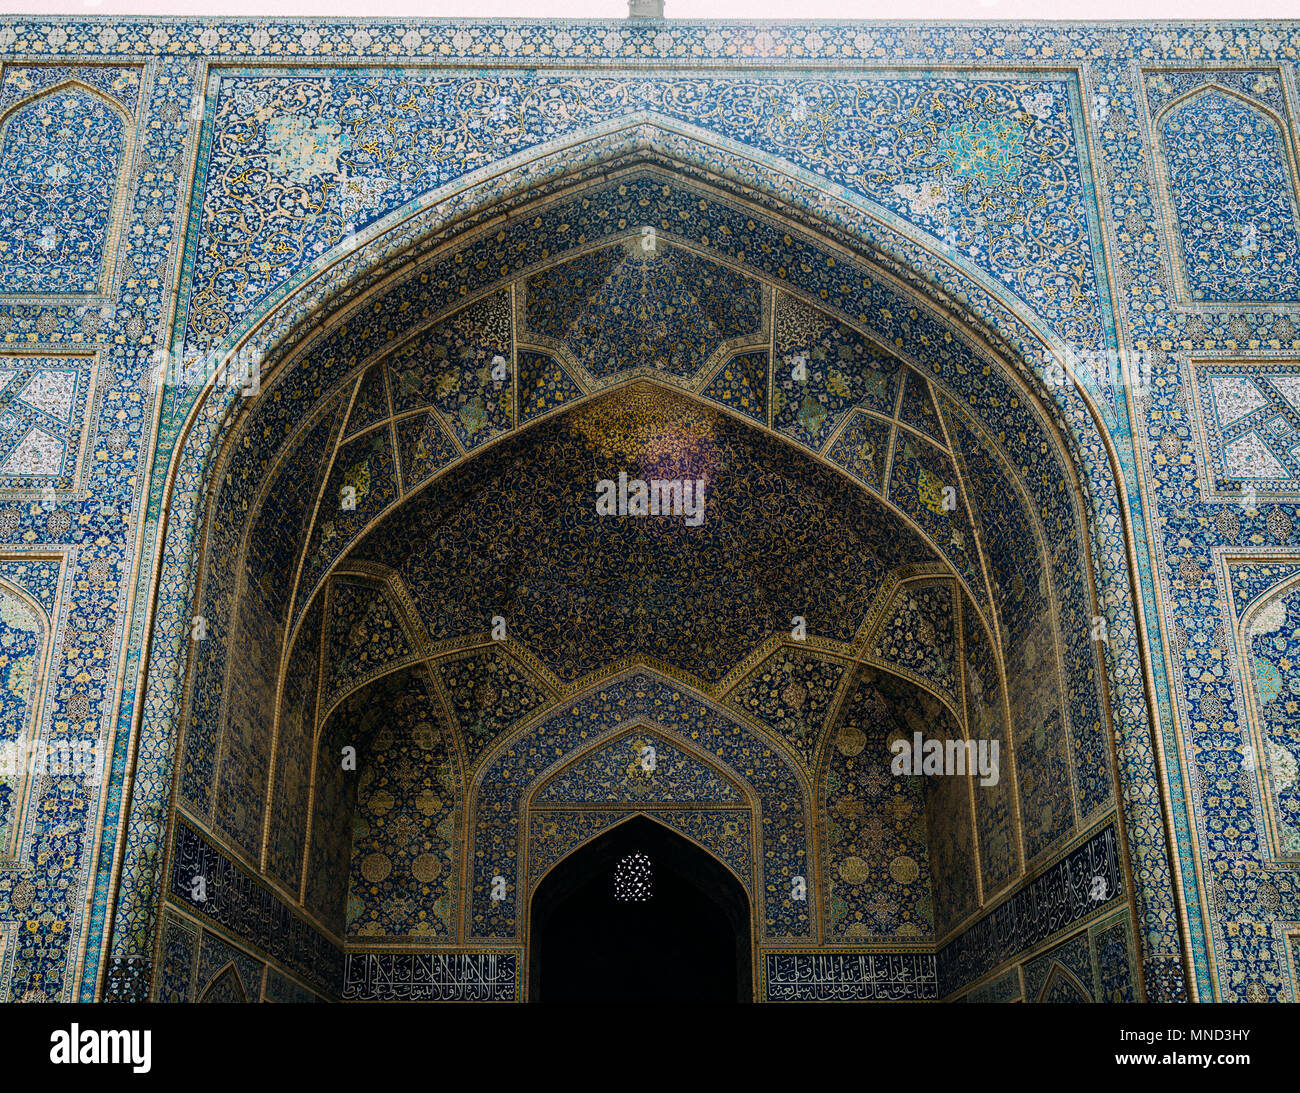 Historic Imam Mosque at Naghsh-e Jahan Square, Isfahan,Iran. Construction began in 1611 and is one of the masterpieces of Persian architecture in the Islamic era - Stock Image